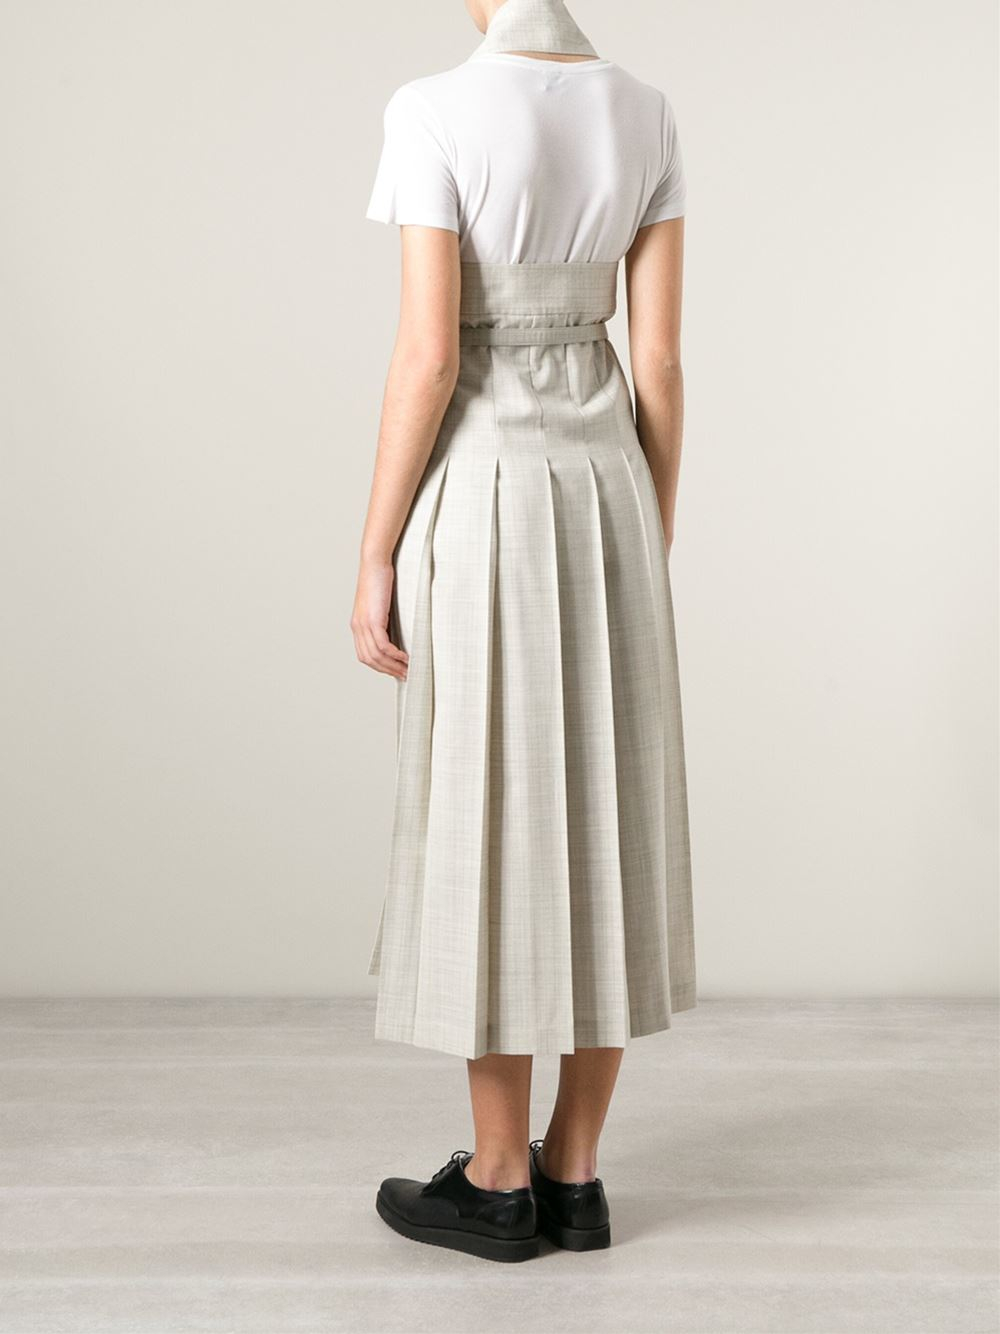 Comme des gar ons 39 robe de chambre 39 skirt in natural lyst for Robe de chambre seculo xix